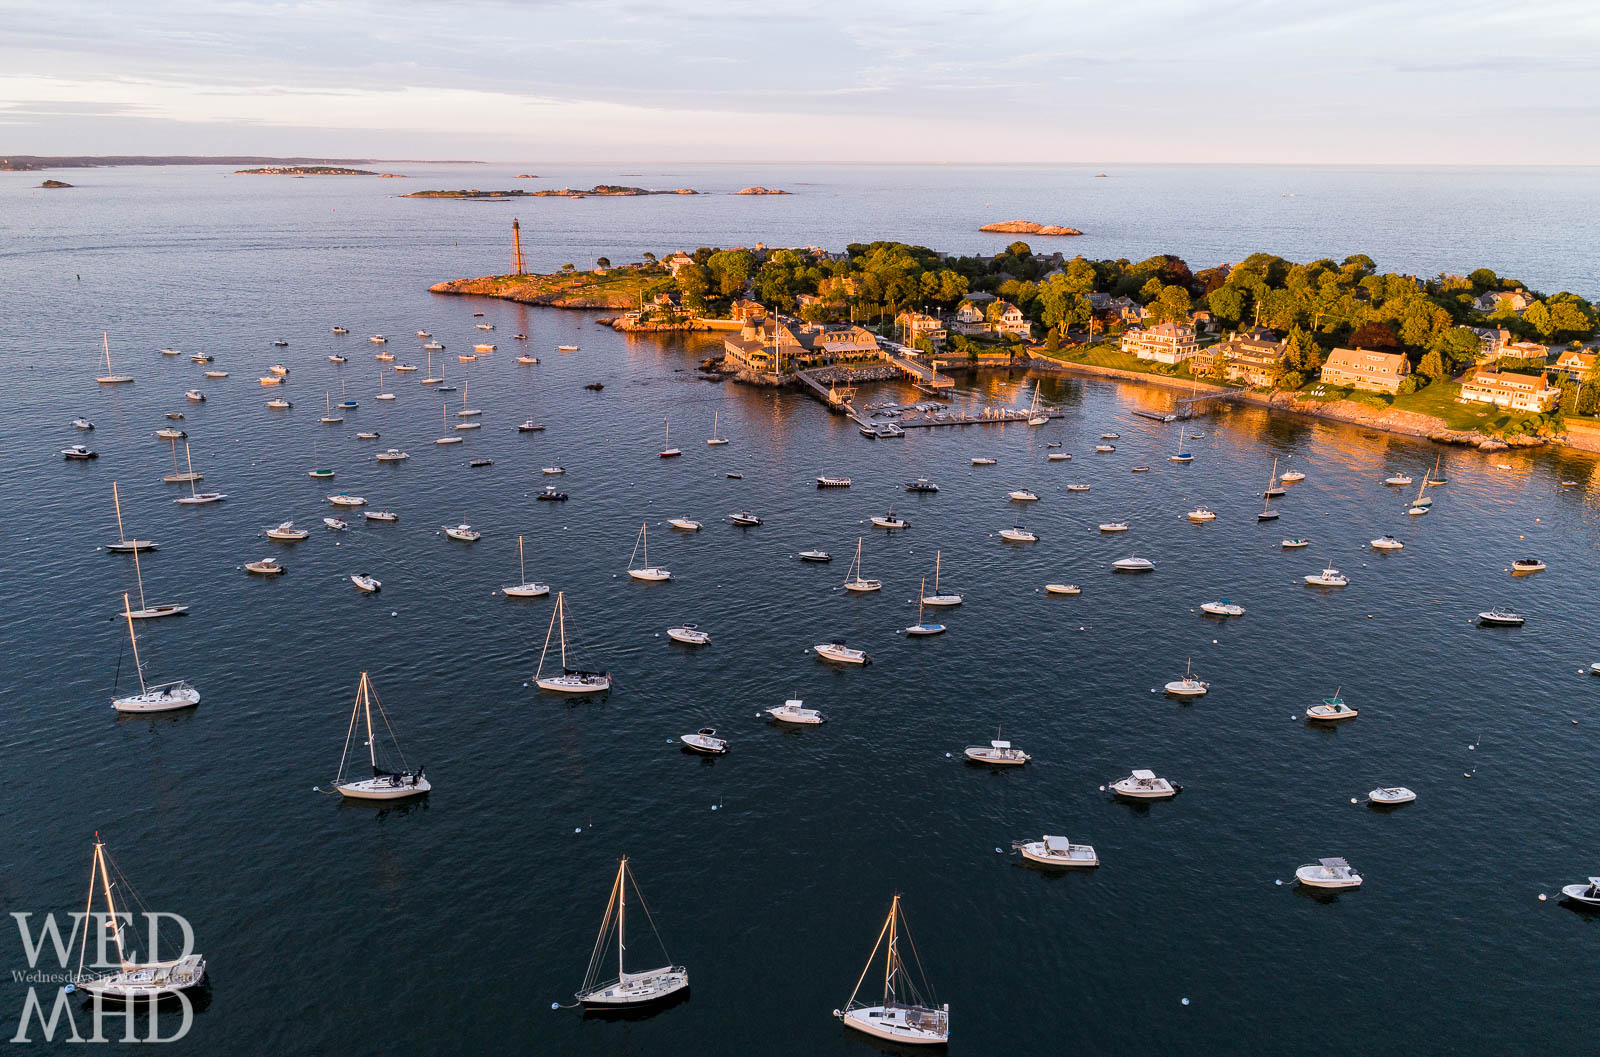 An aerial view of golden masts reflecting the last glow of sunset in Marblehead Harbor with the Neck, Corinthian Yacht Club and lighthouse glowing as well